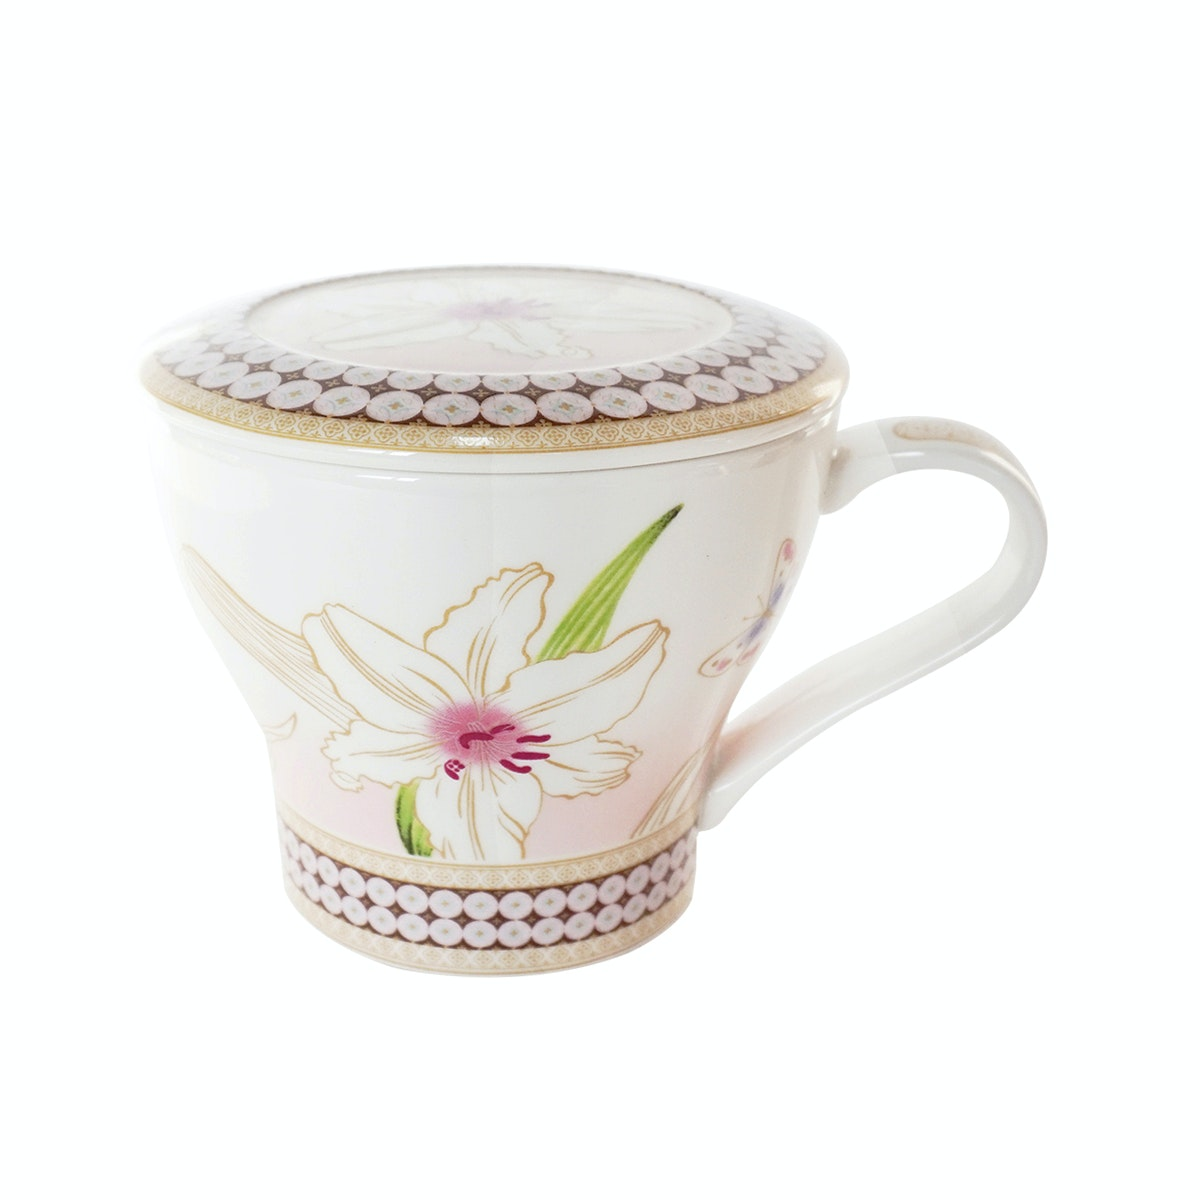 Saint James Premium Tableware Harmony Peach Mug Set 2pcs